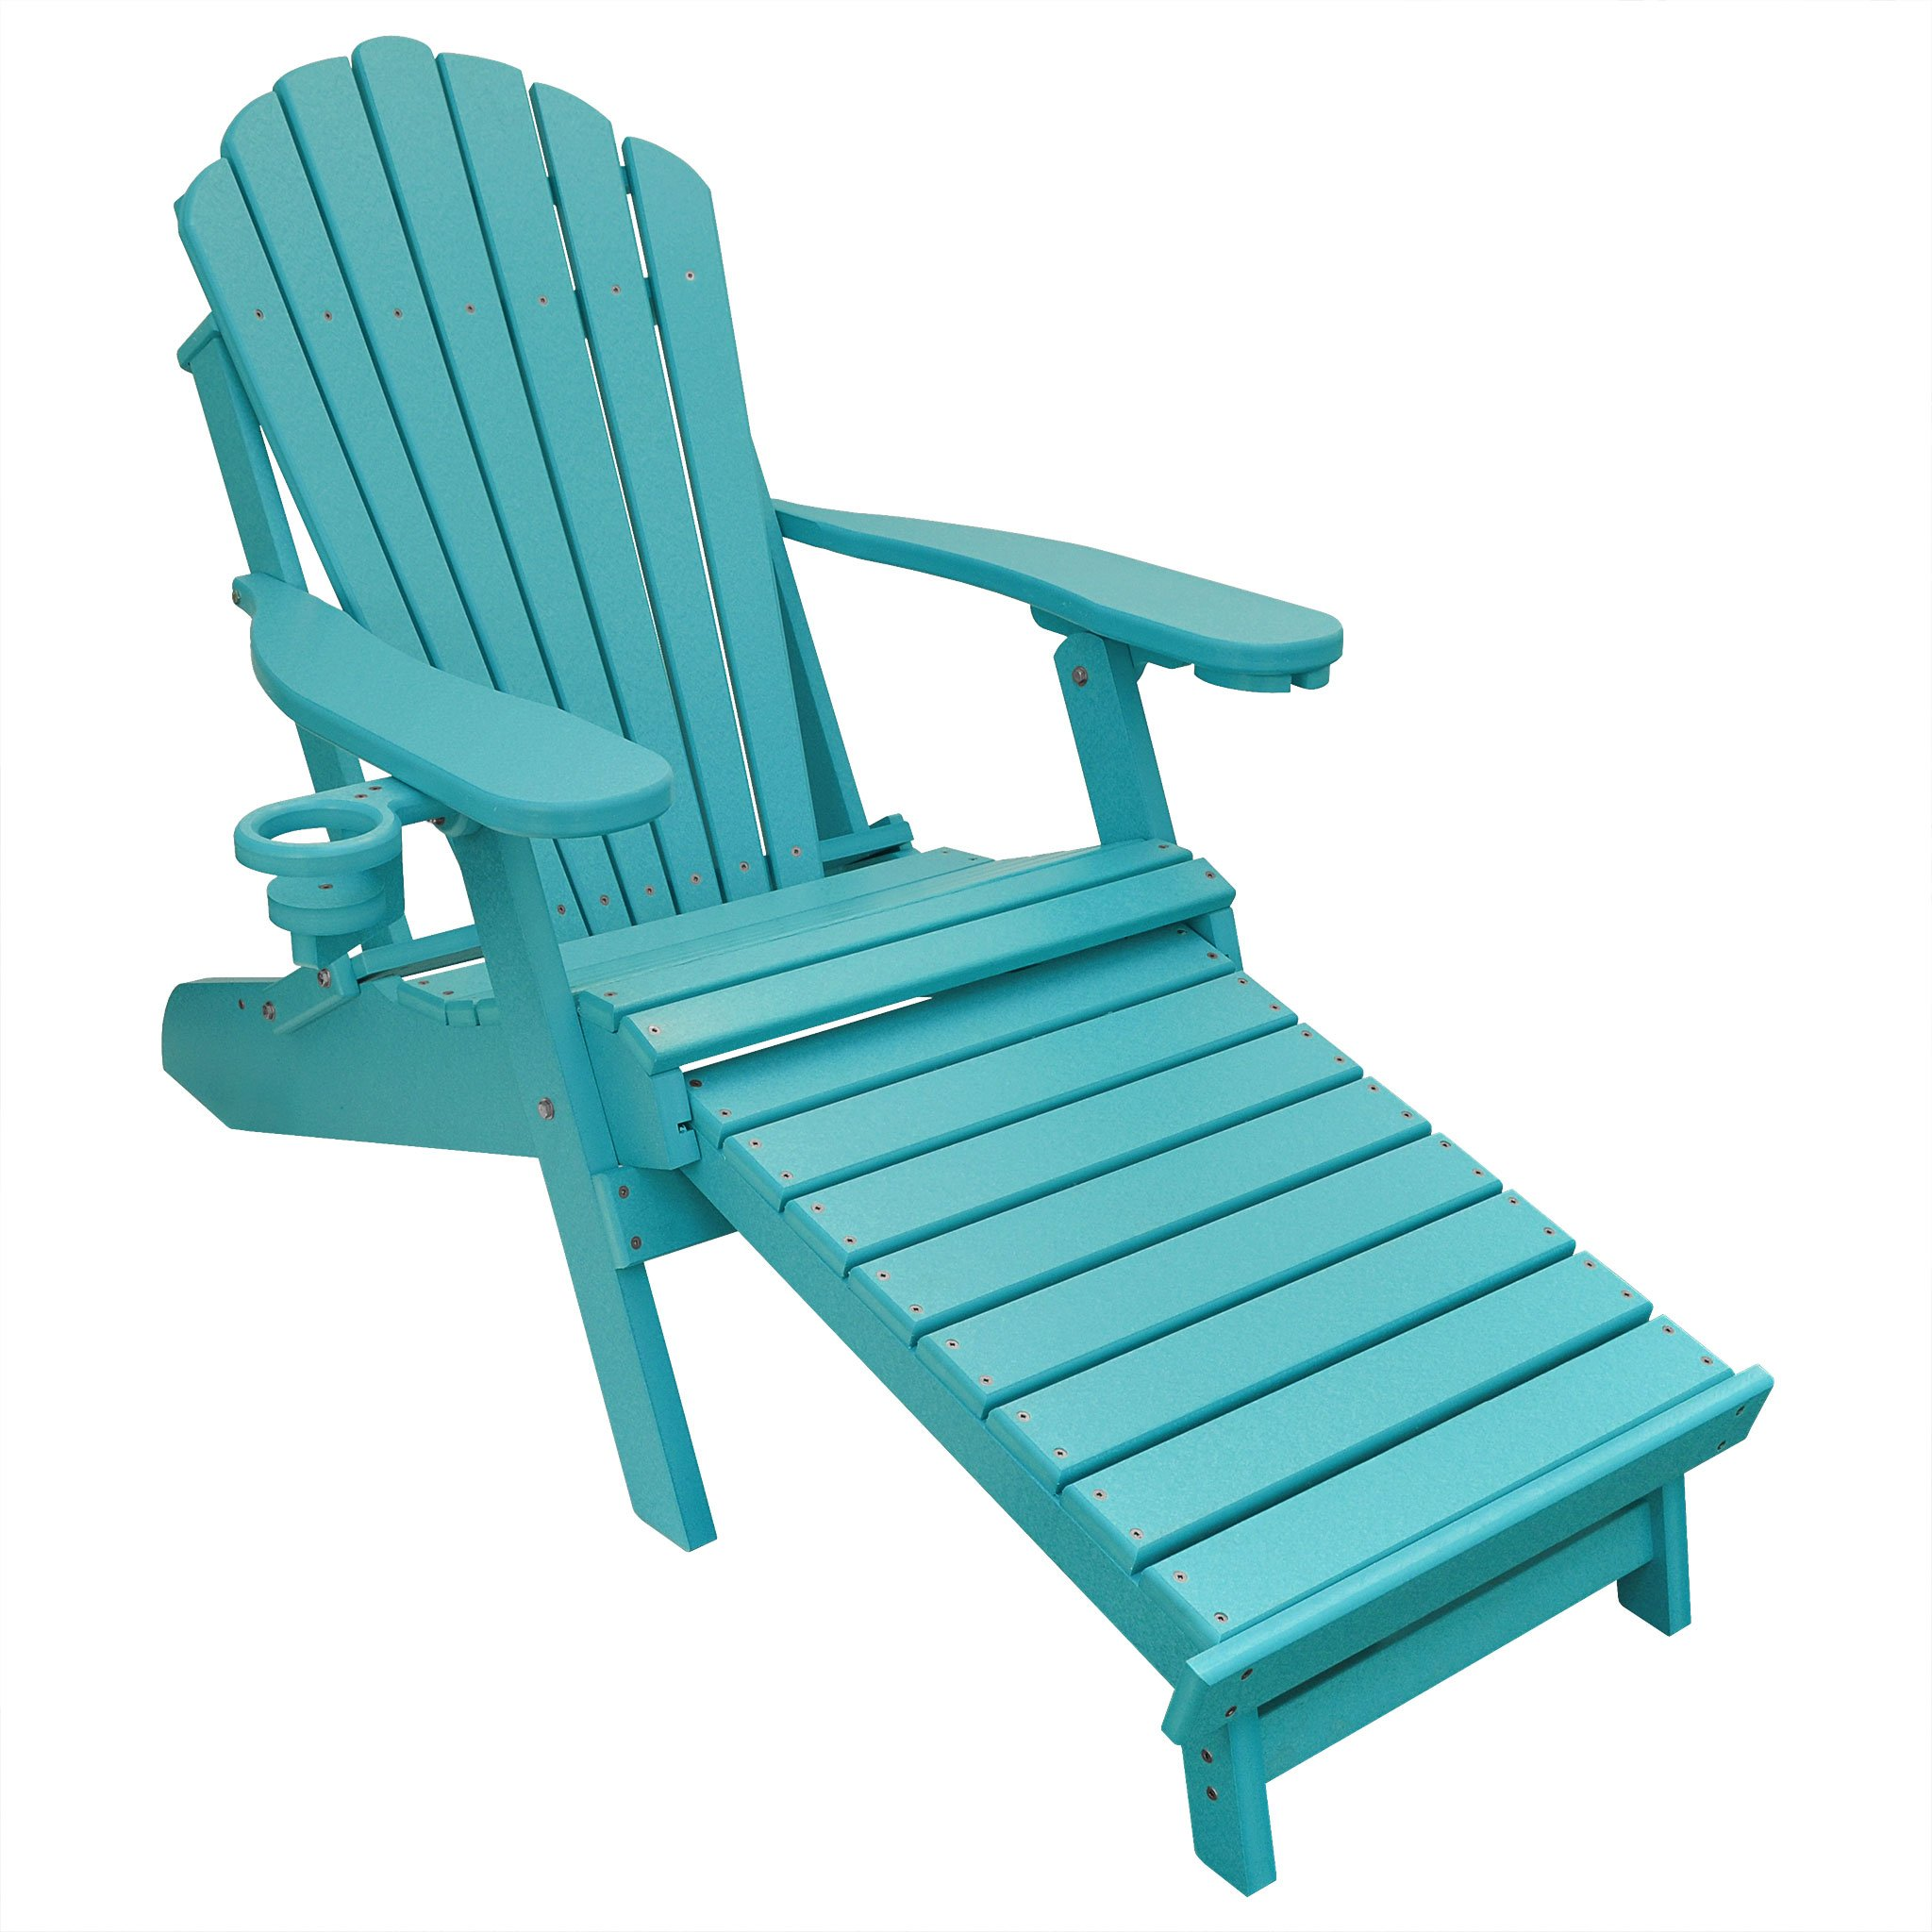 ECCB Outdoor Outer Banks Deluxe Oversized Poly Lumber Folding Adirondack Chair with Integrated Footrest (Aruba Blue) …